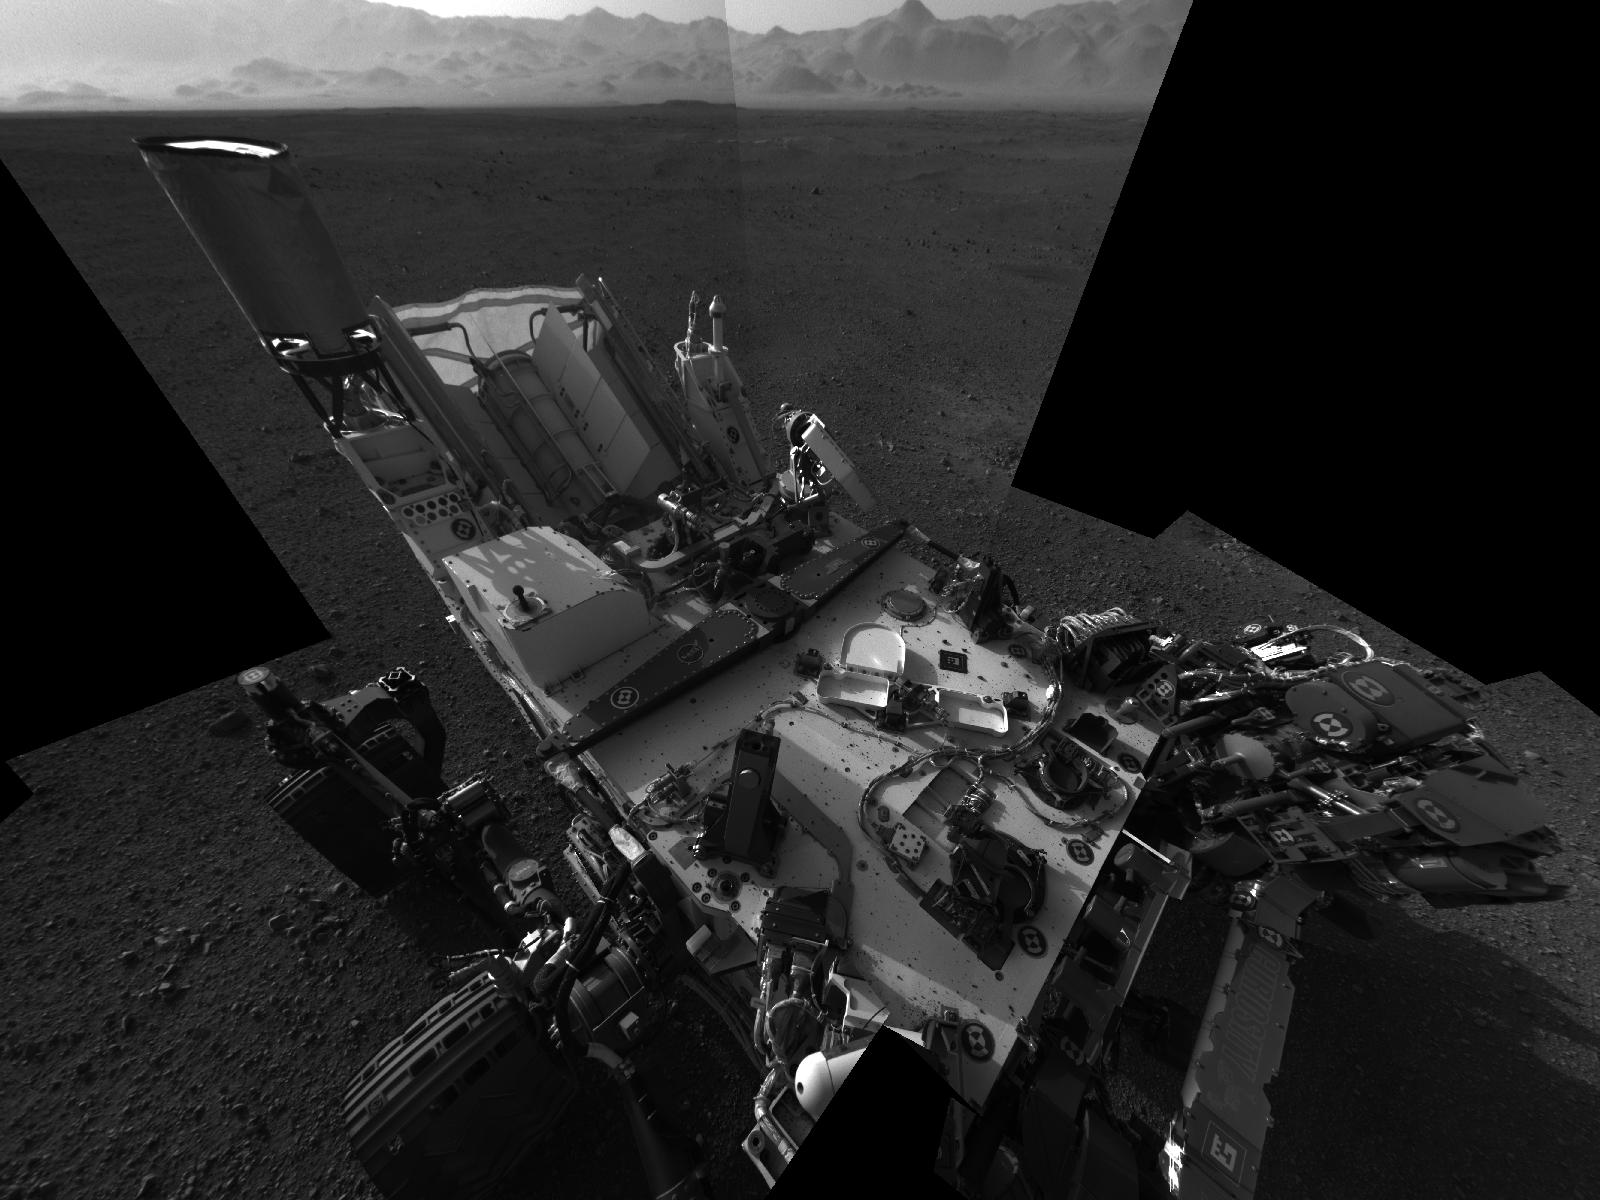 NASA Holds Mars Rover Update Today: How to Watch Online